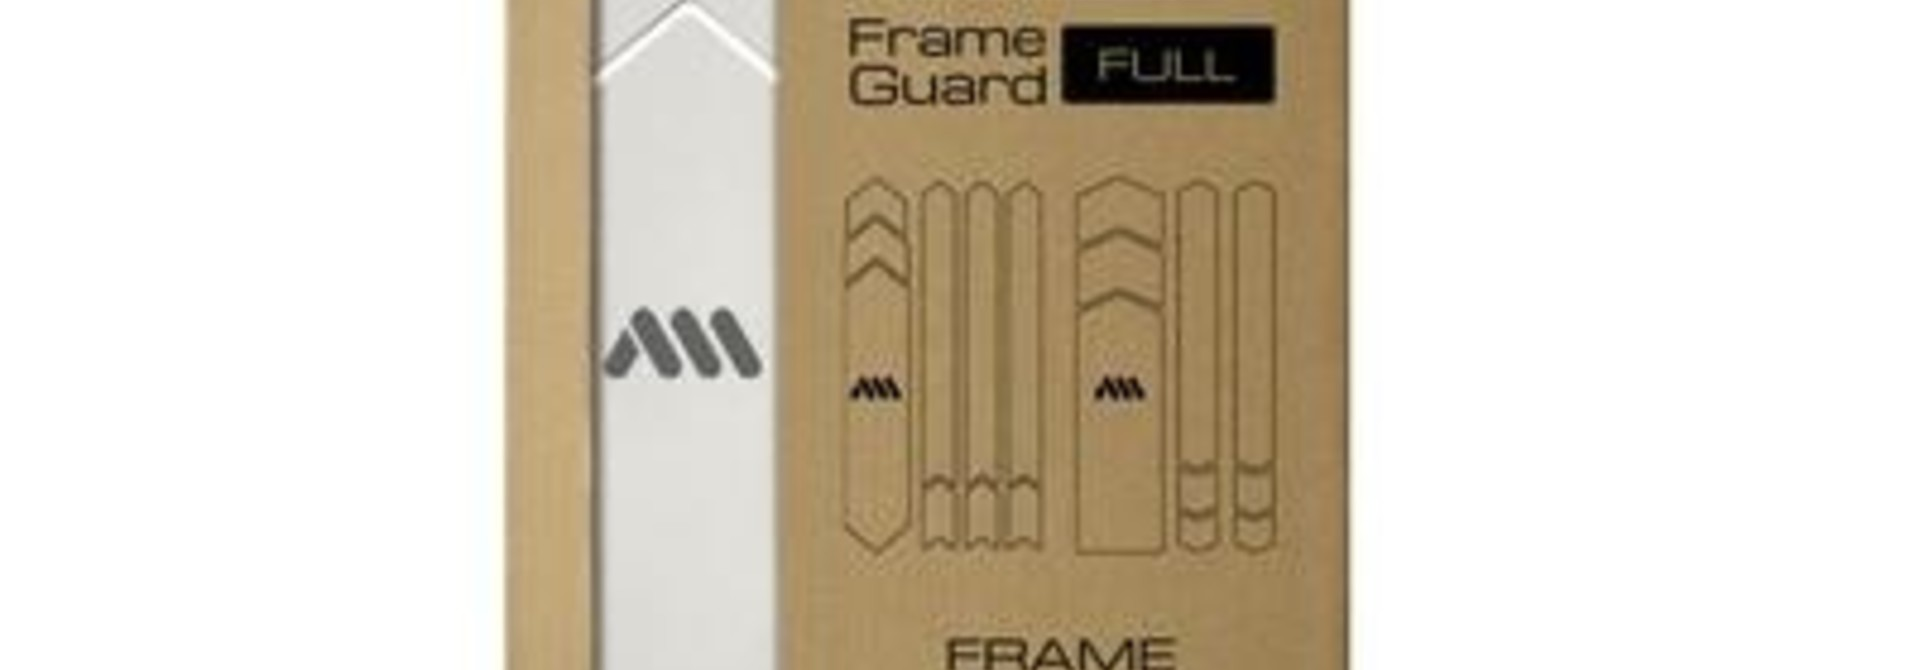 AMS HONEYCOMB FRAME GUARD FULL. CLEAR